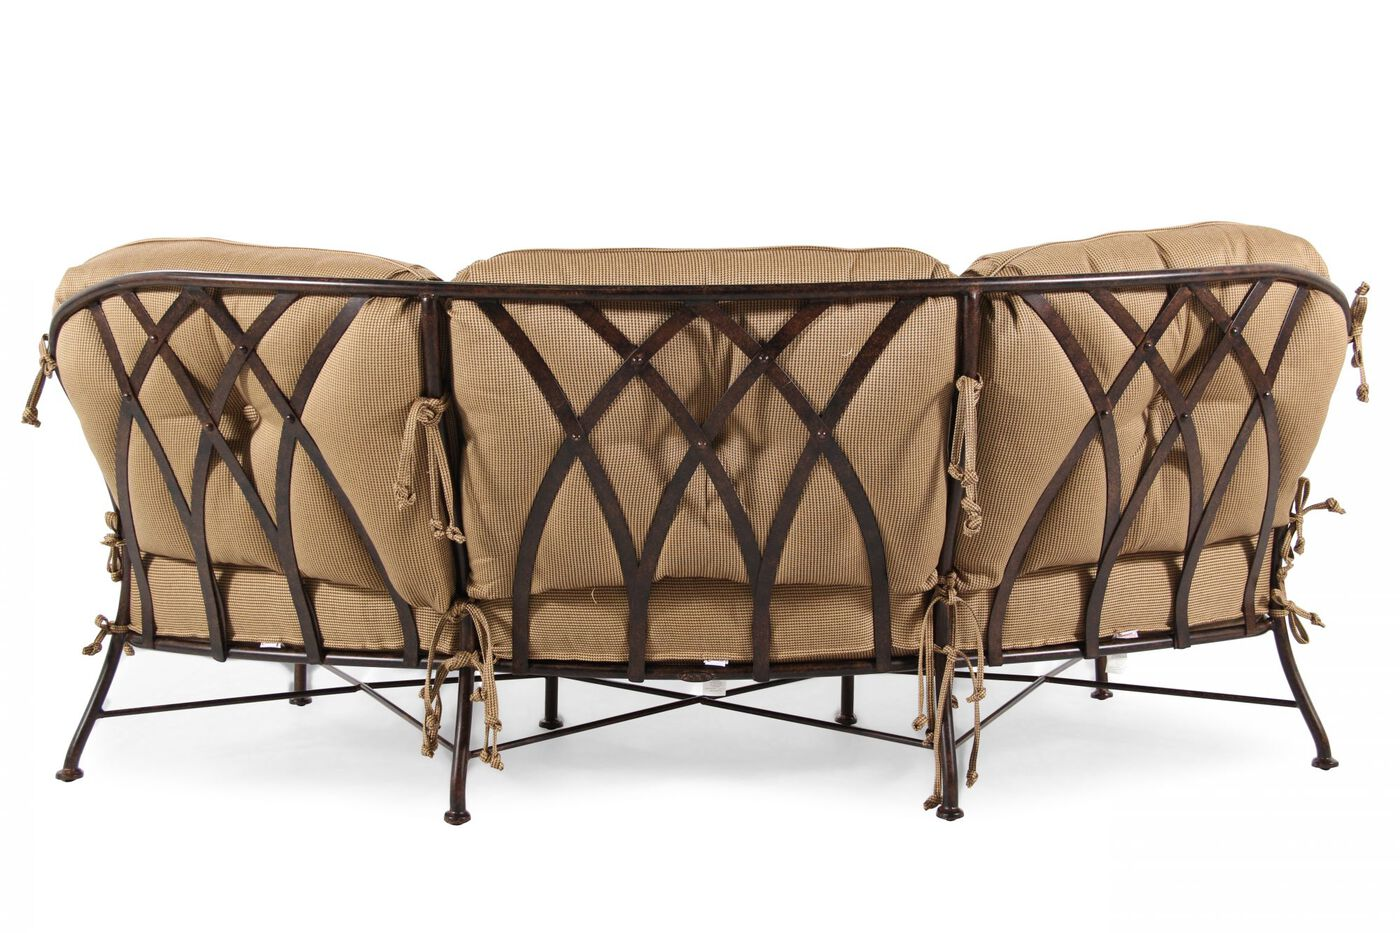 Greatest Aluminum Crescent Sofa in Tan | Mathis Brothers Furniture PV85